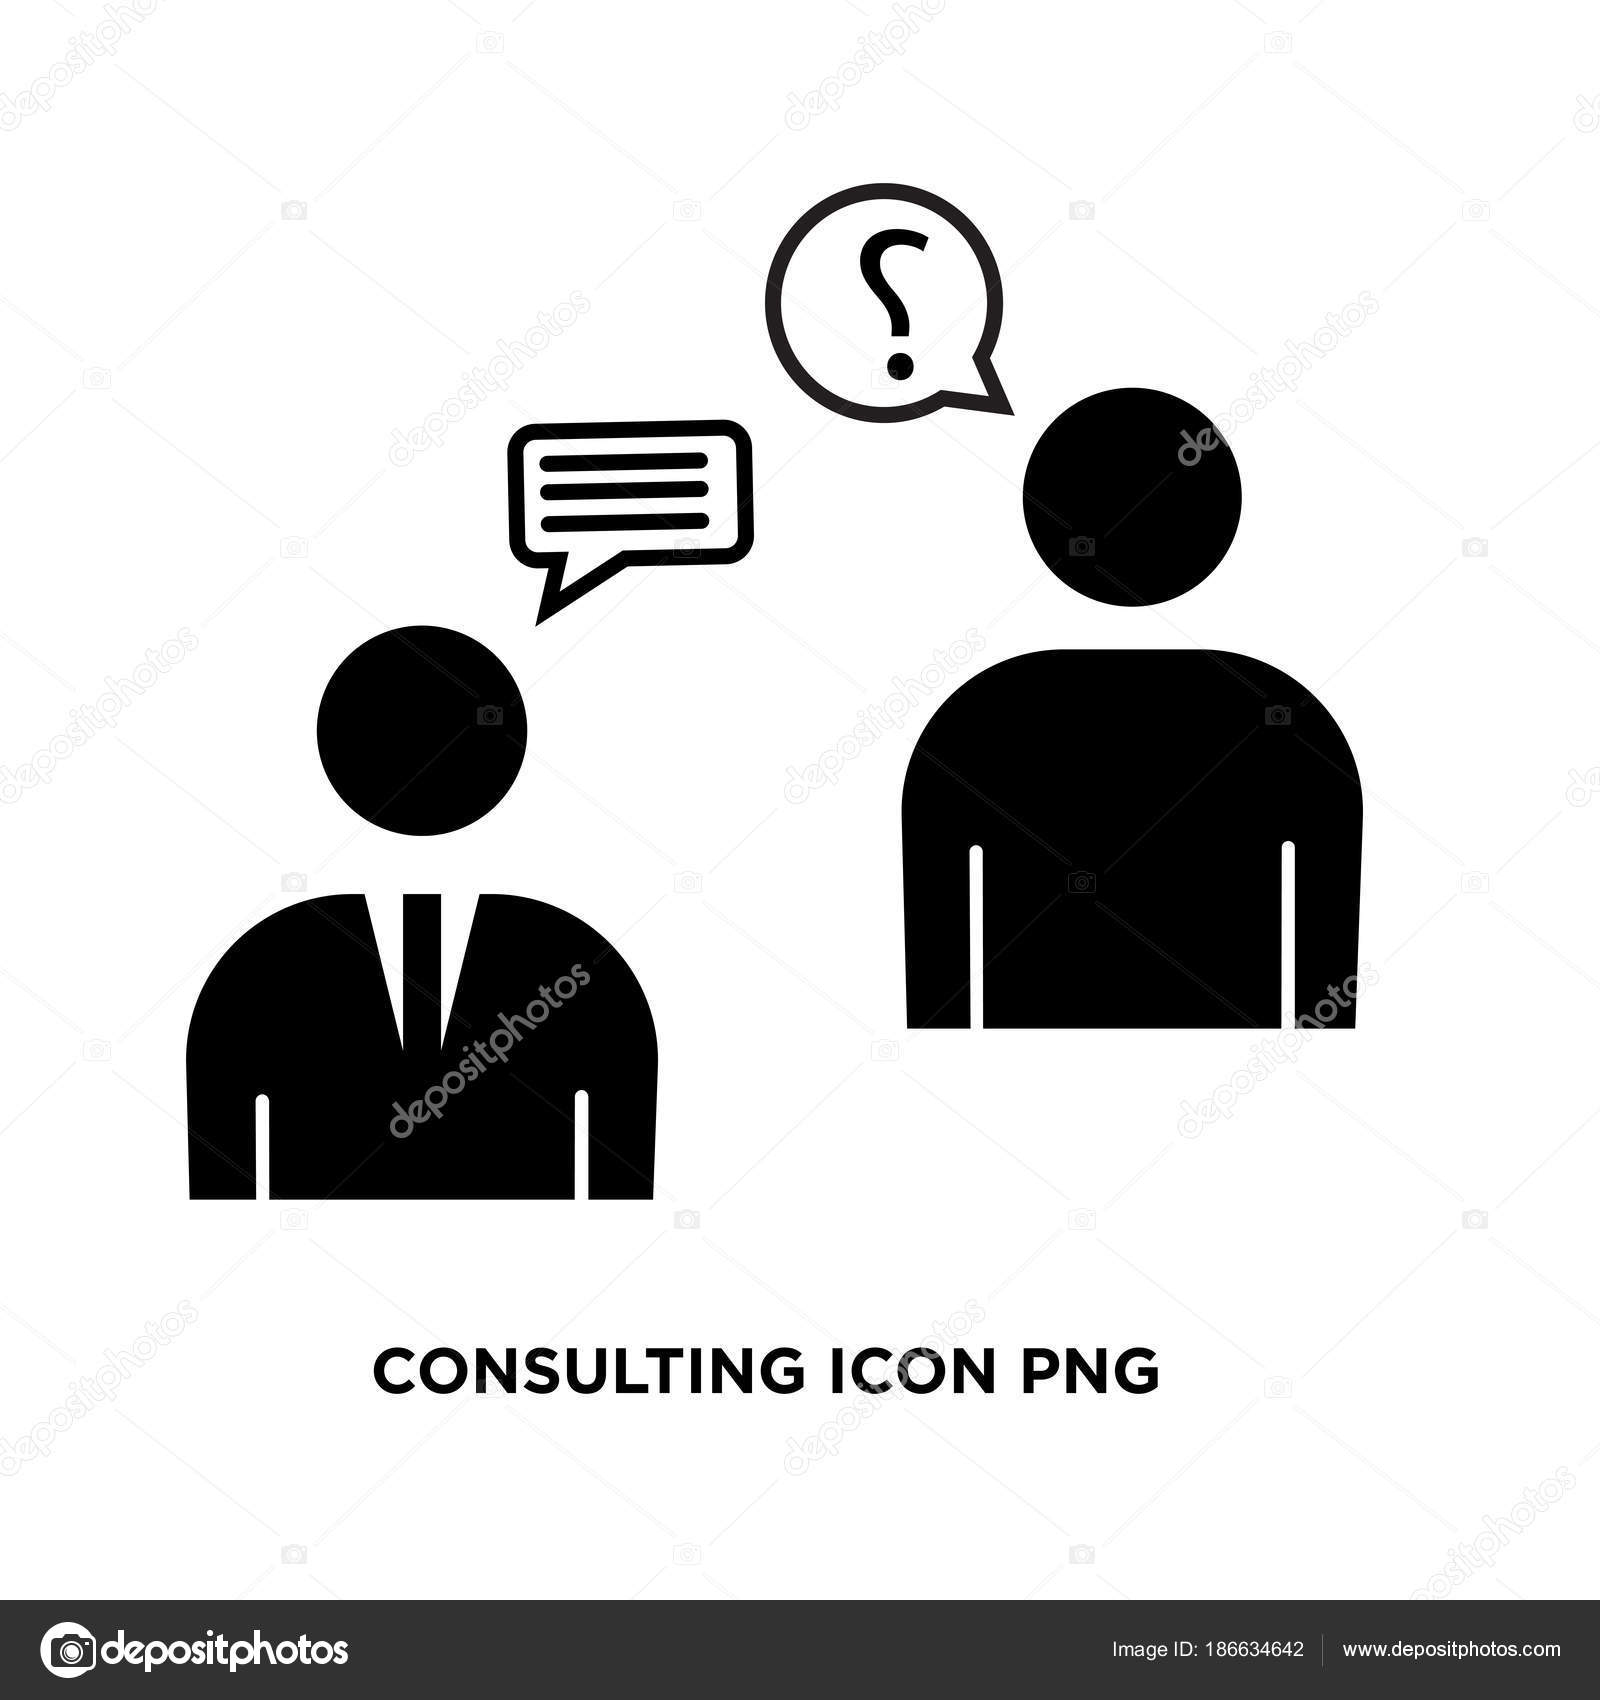 Consulting icon png, flat vector sign isolated on white backgrou.